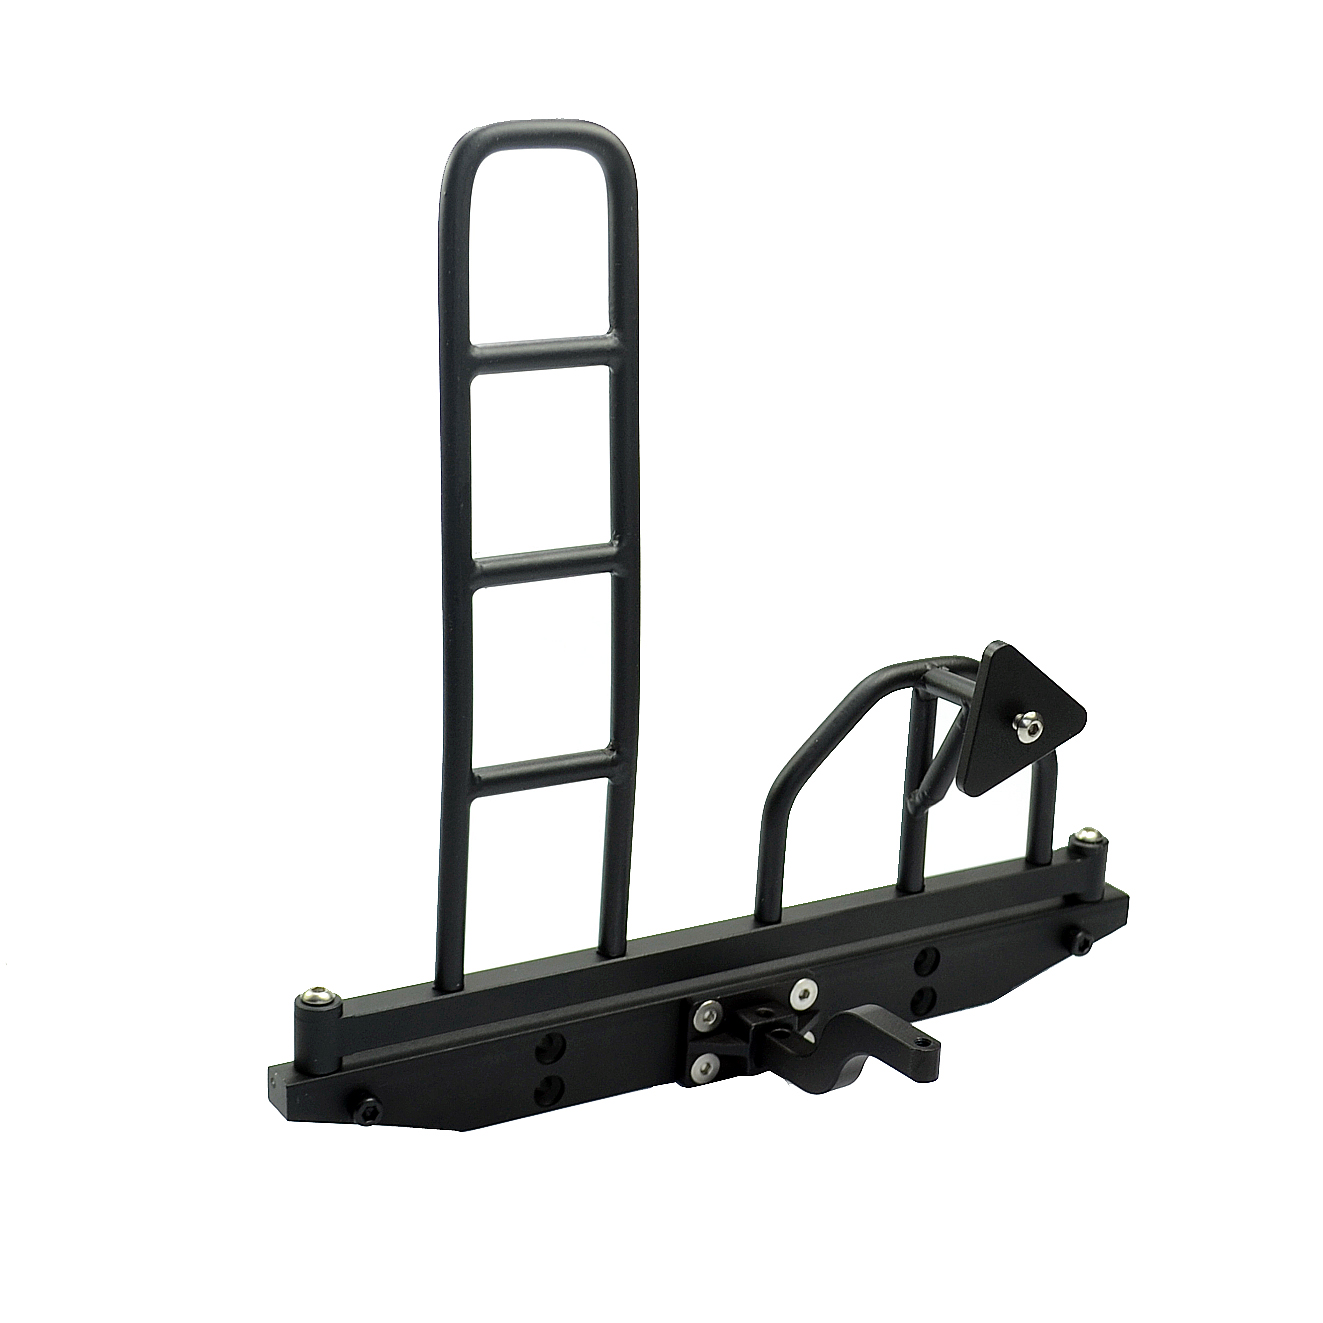 1:10 Rc Crawler Aluminum Alloy Rear Bumper Hintere Stoßstange W/ Spare Tire Rack &Ladder For D90 stange personal property